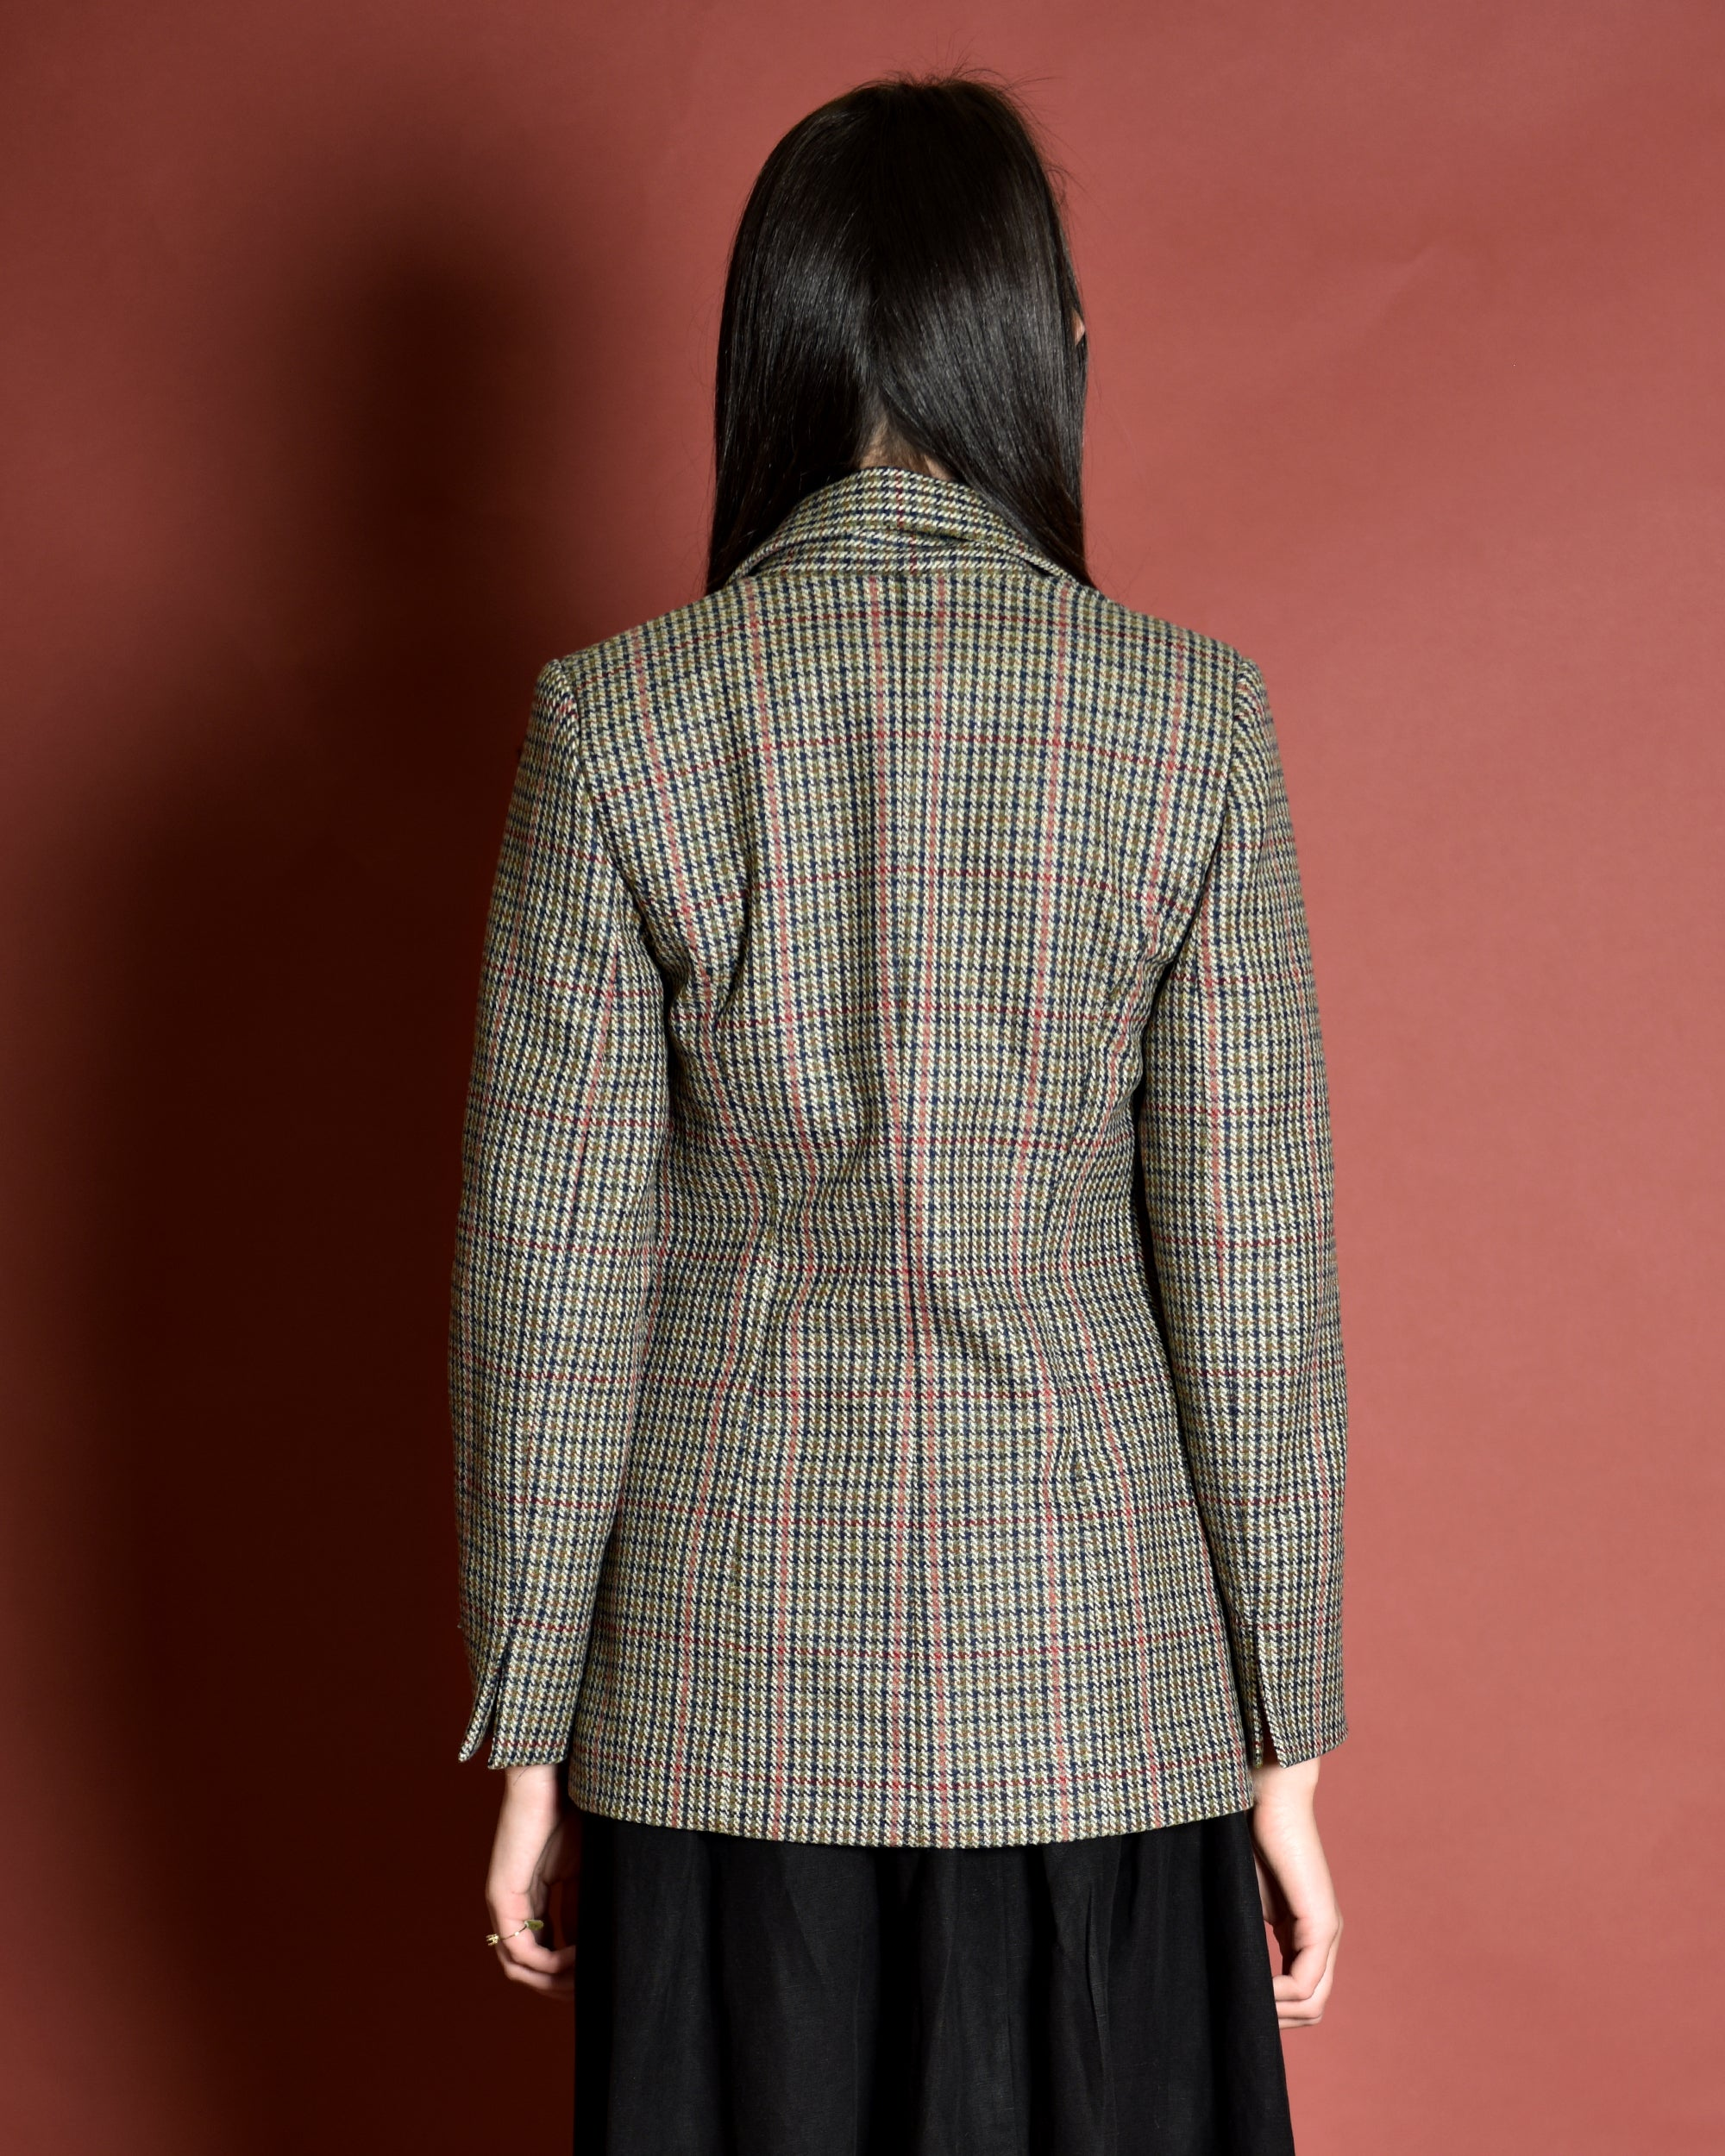 ATRIUM Tailored Wool Suit Jacket / Check